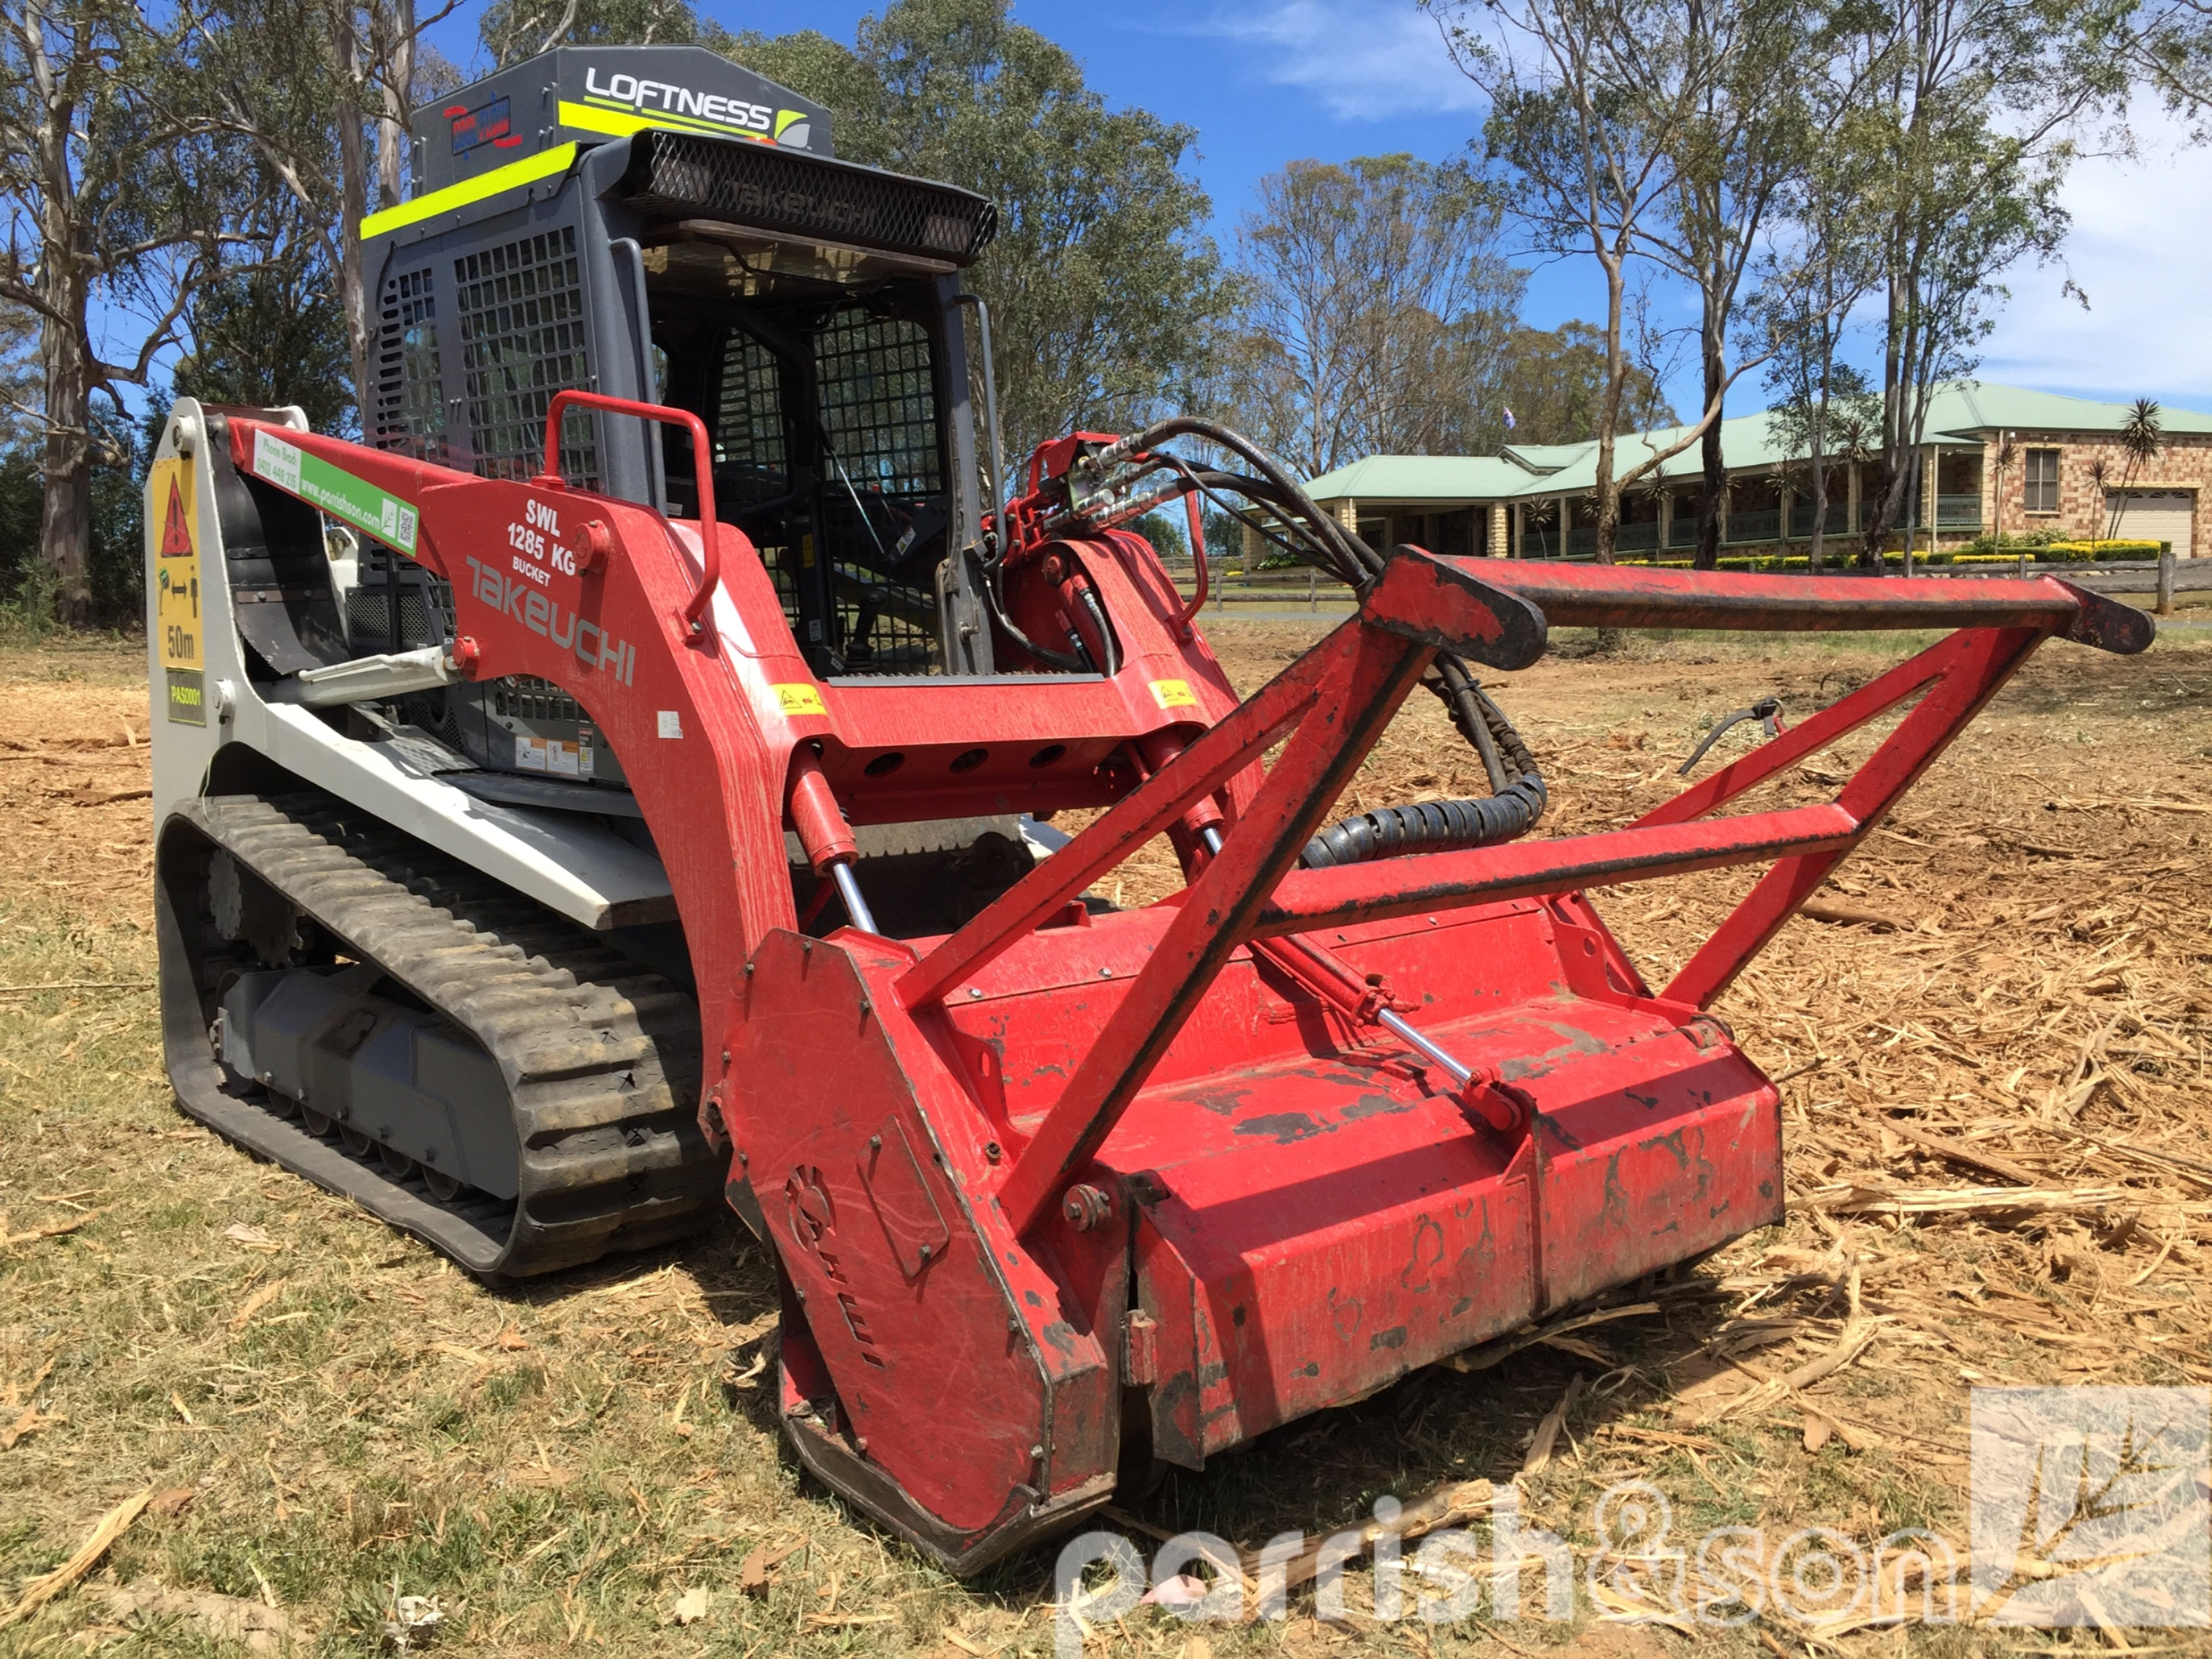 Takeuchi tracked loader with mulch attachment